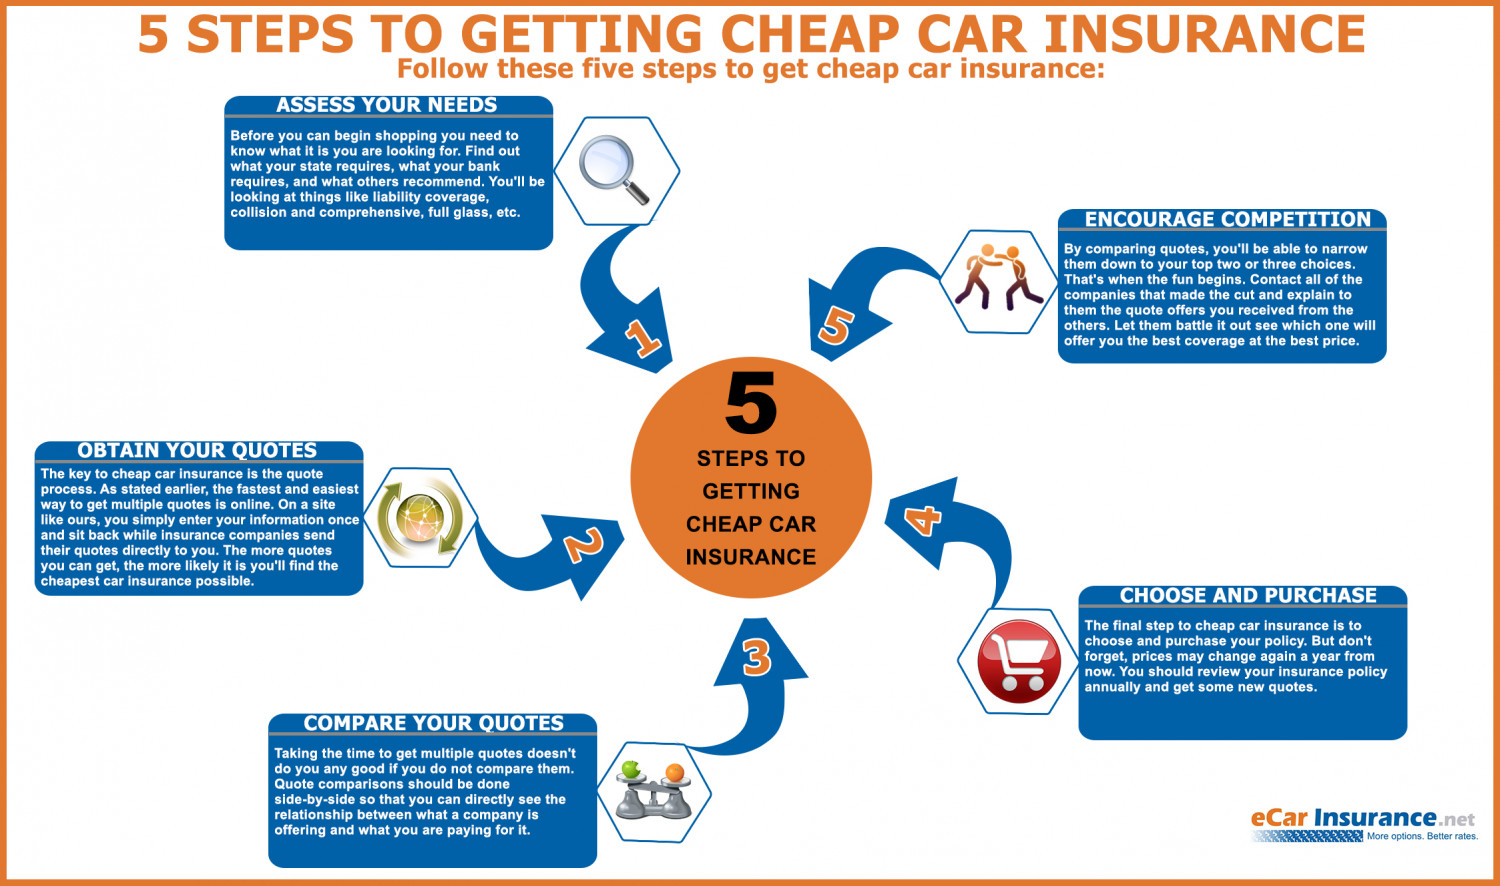 5 Steps To Getting Cheap Car Insurance Visual Ly